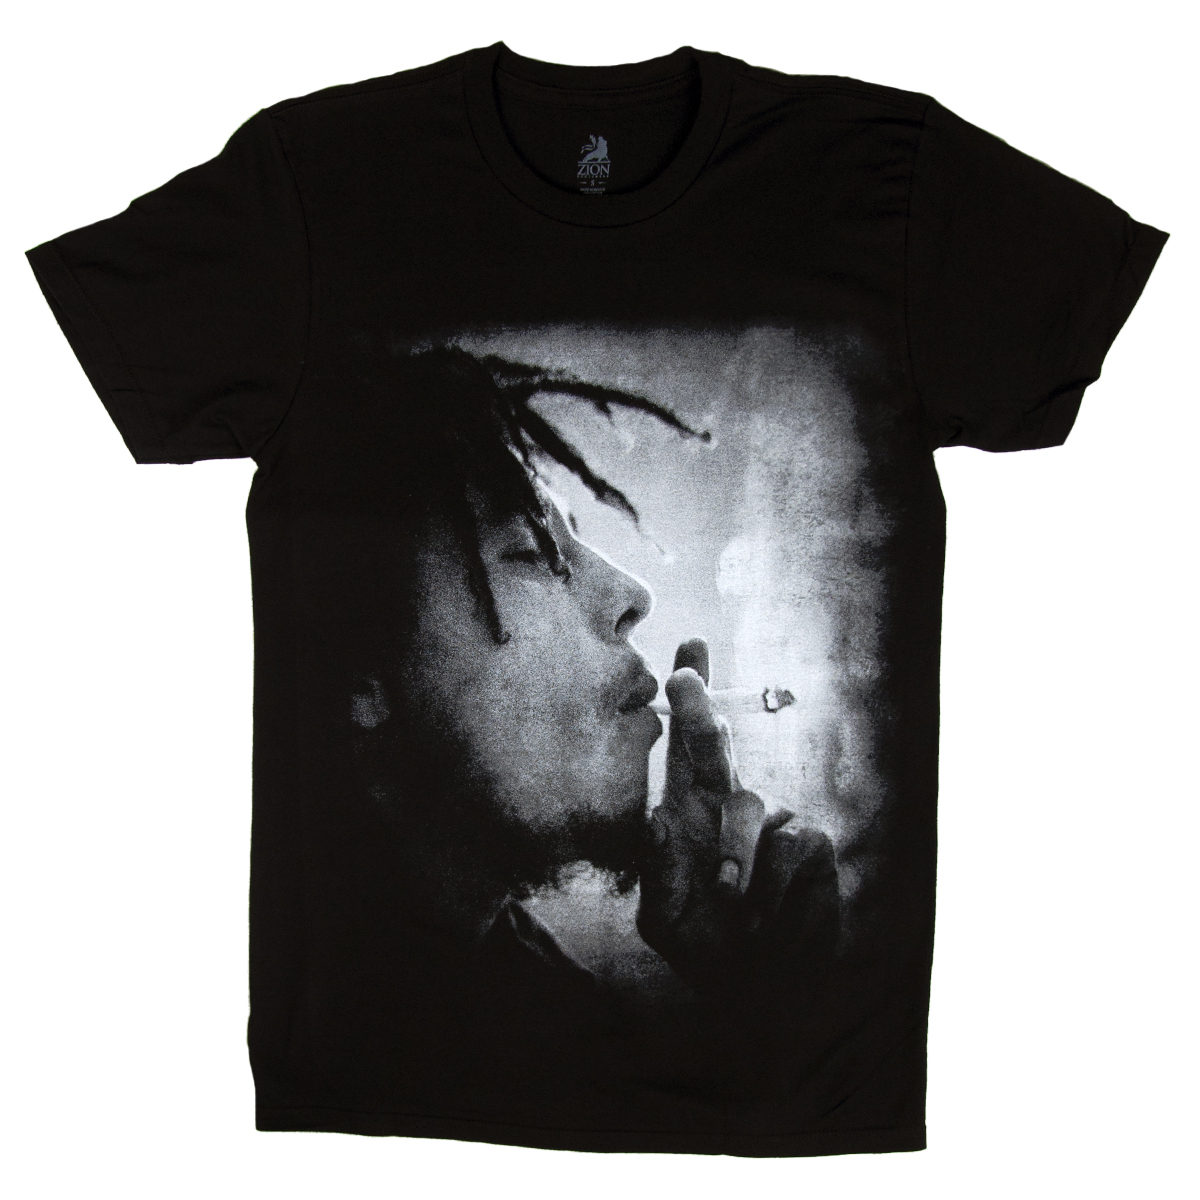 Bob Marley Mellow Mood Black T-Shirt - Men's